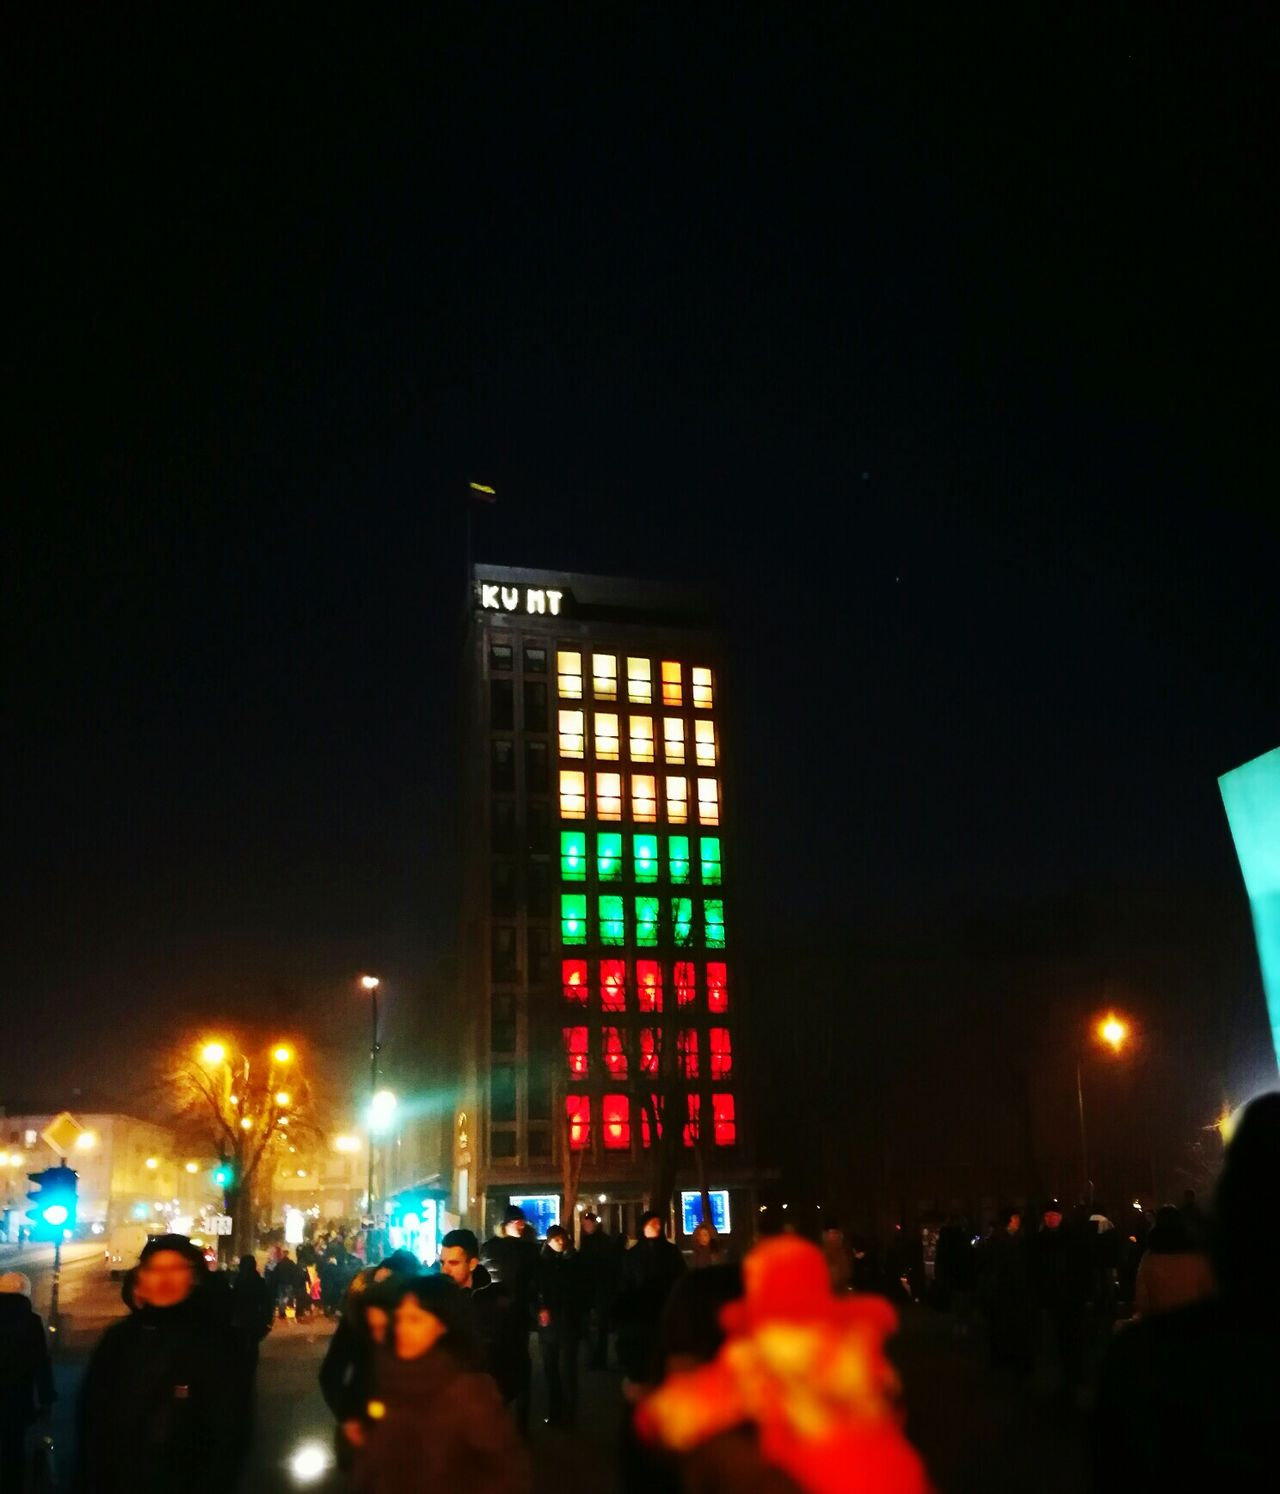 Lithuania Independence Day City Celebration